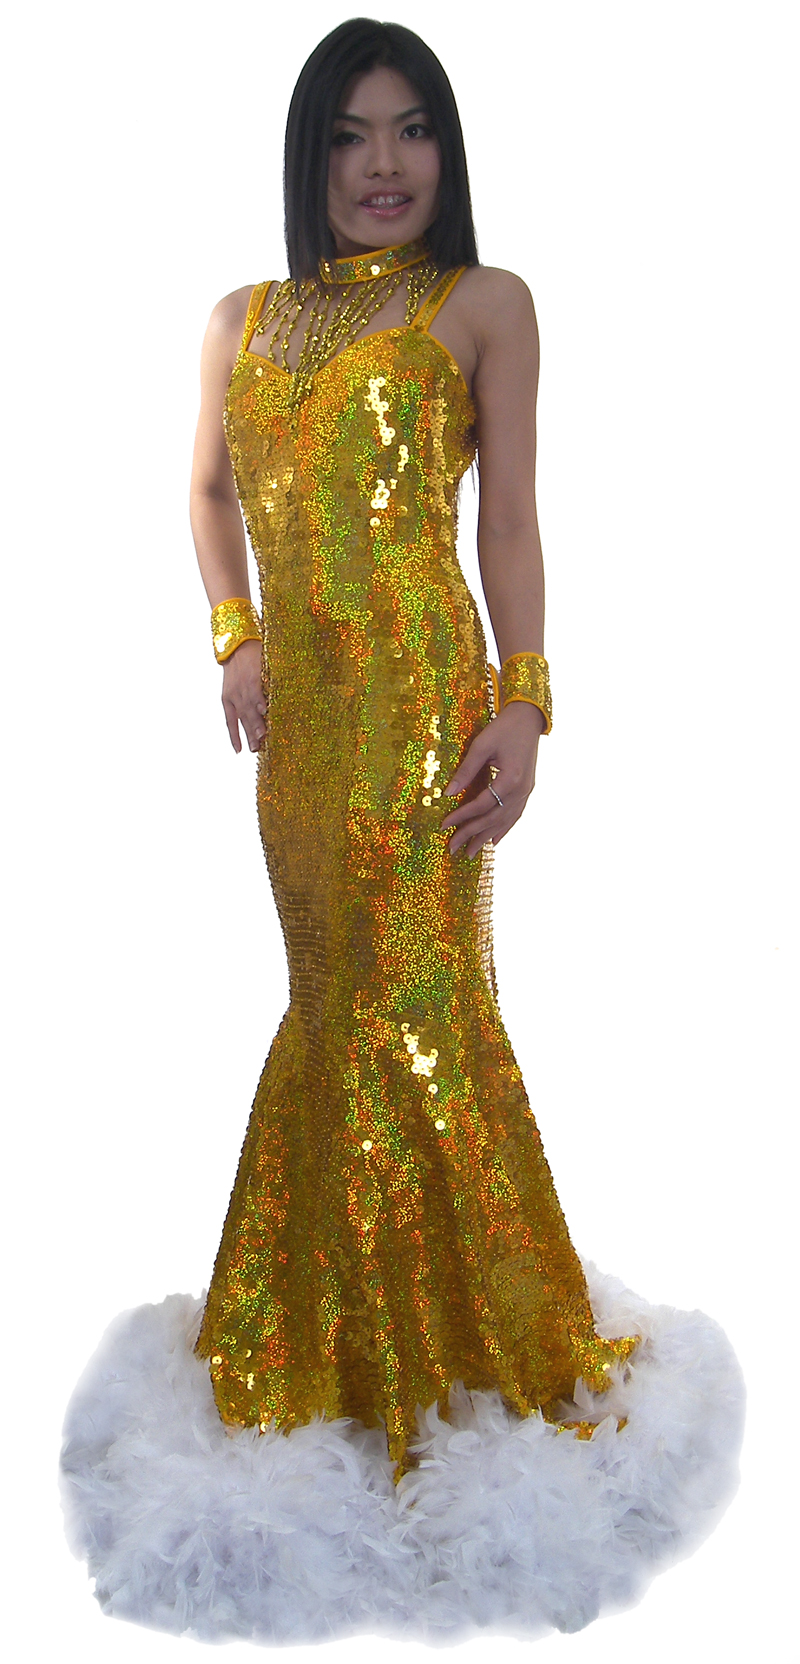 https://michaeljacksoncelebrityclothing.com/sequin-ball-gown/TM2011-sequin-prom-ball-gown.jpg